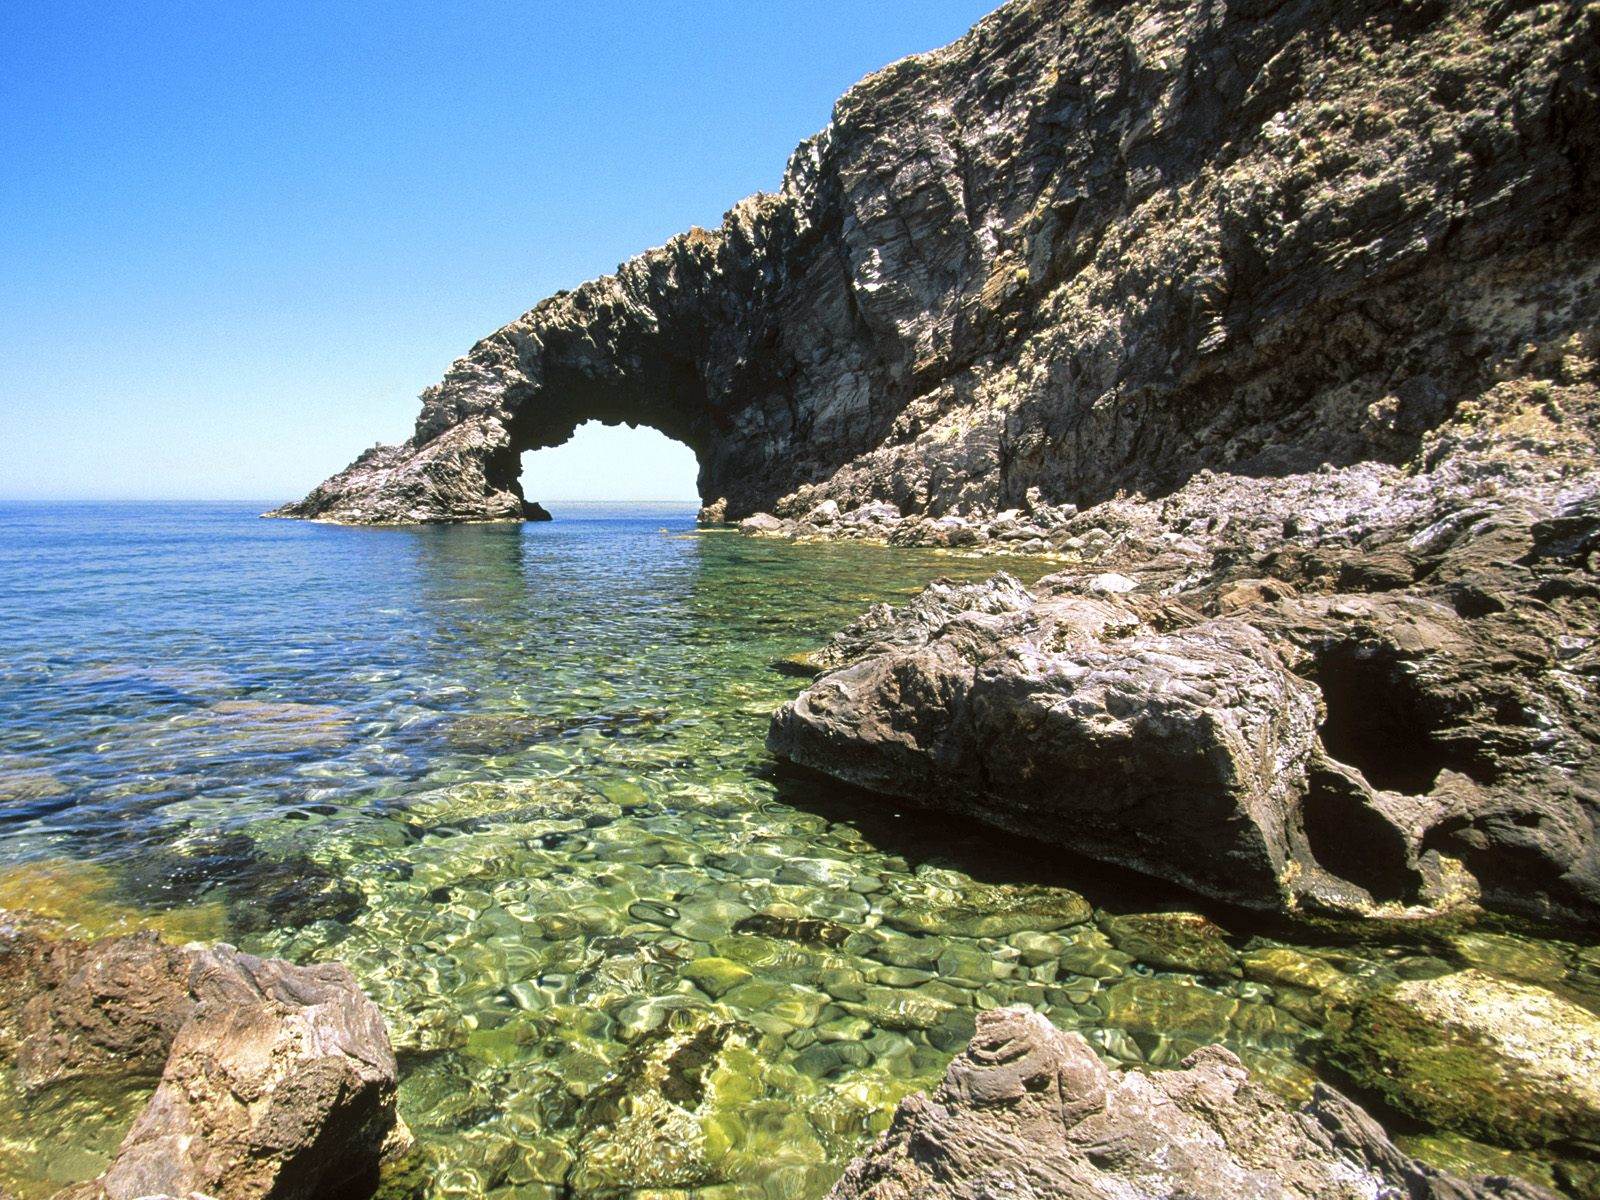 Arco Italy  city images : Arco del'Elefante Pantelleria Island Sicily Italy picture, Arco del ...